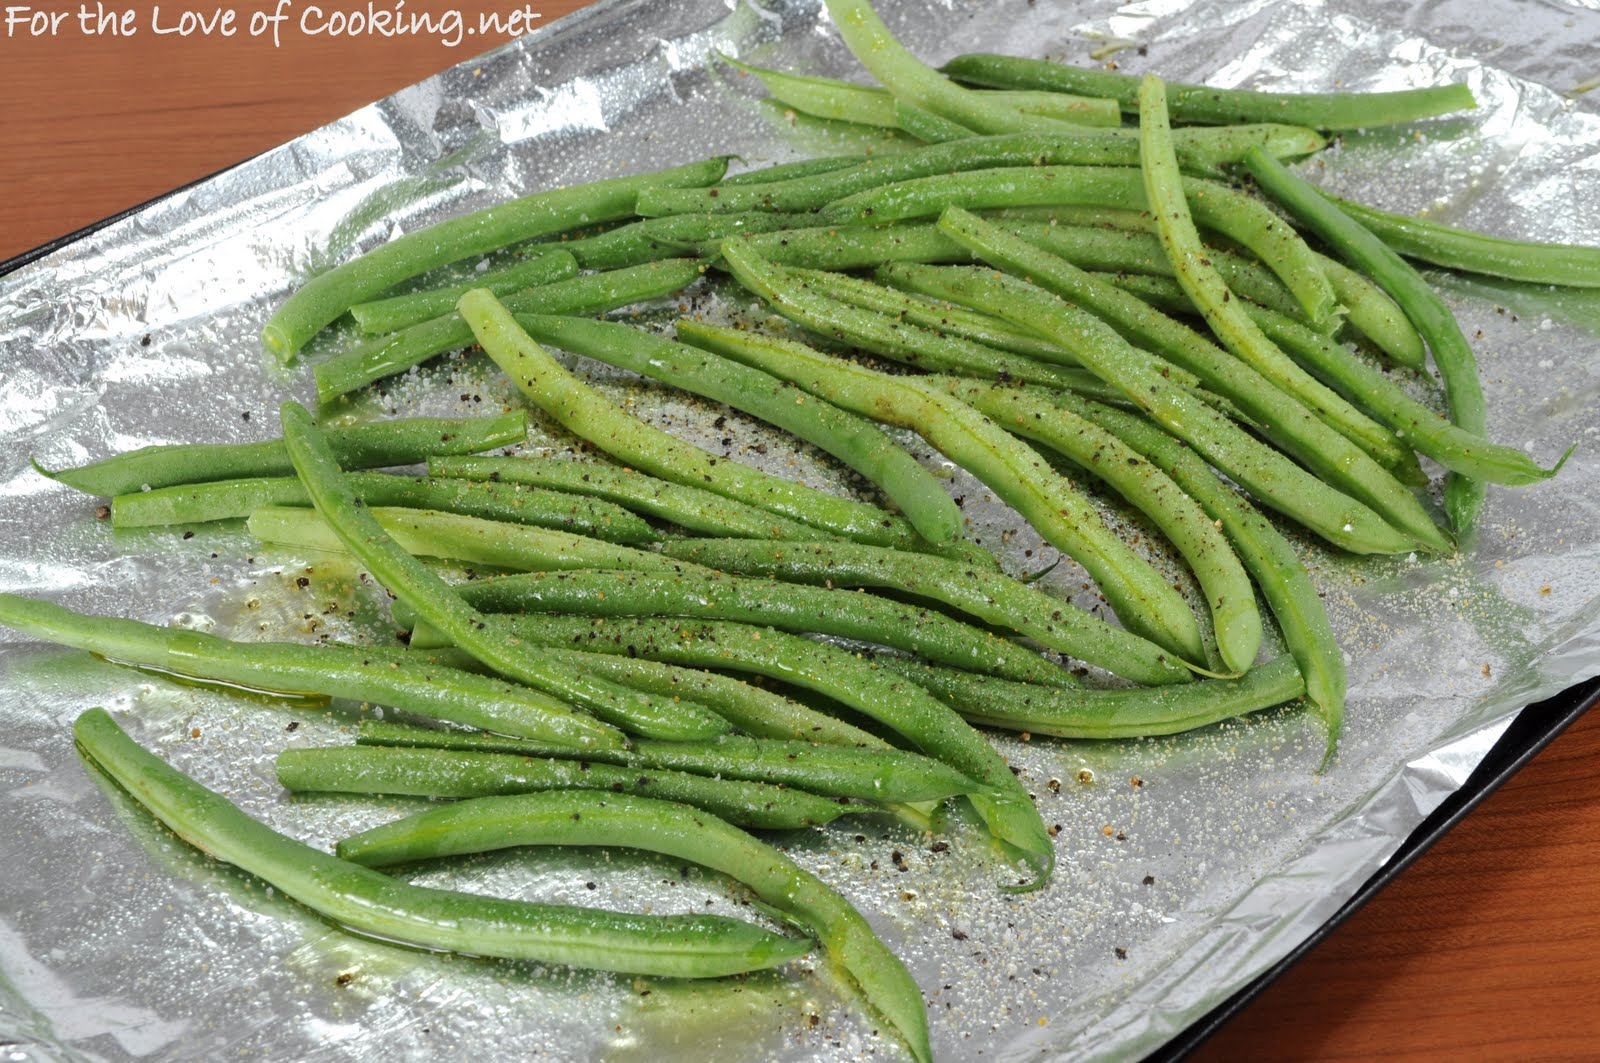 Roasted Green Beans   For the Love of Cooking